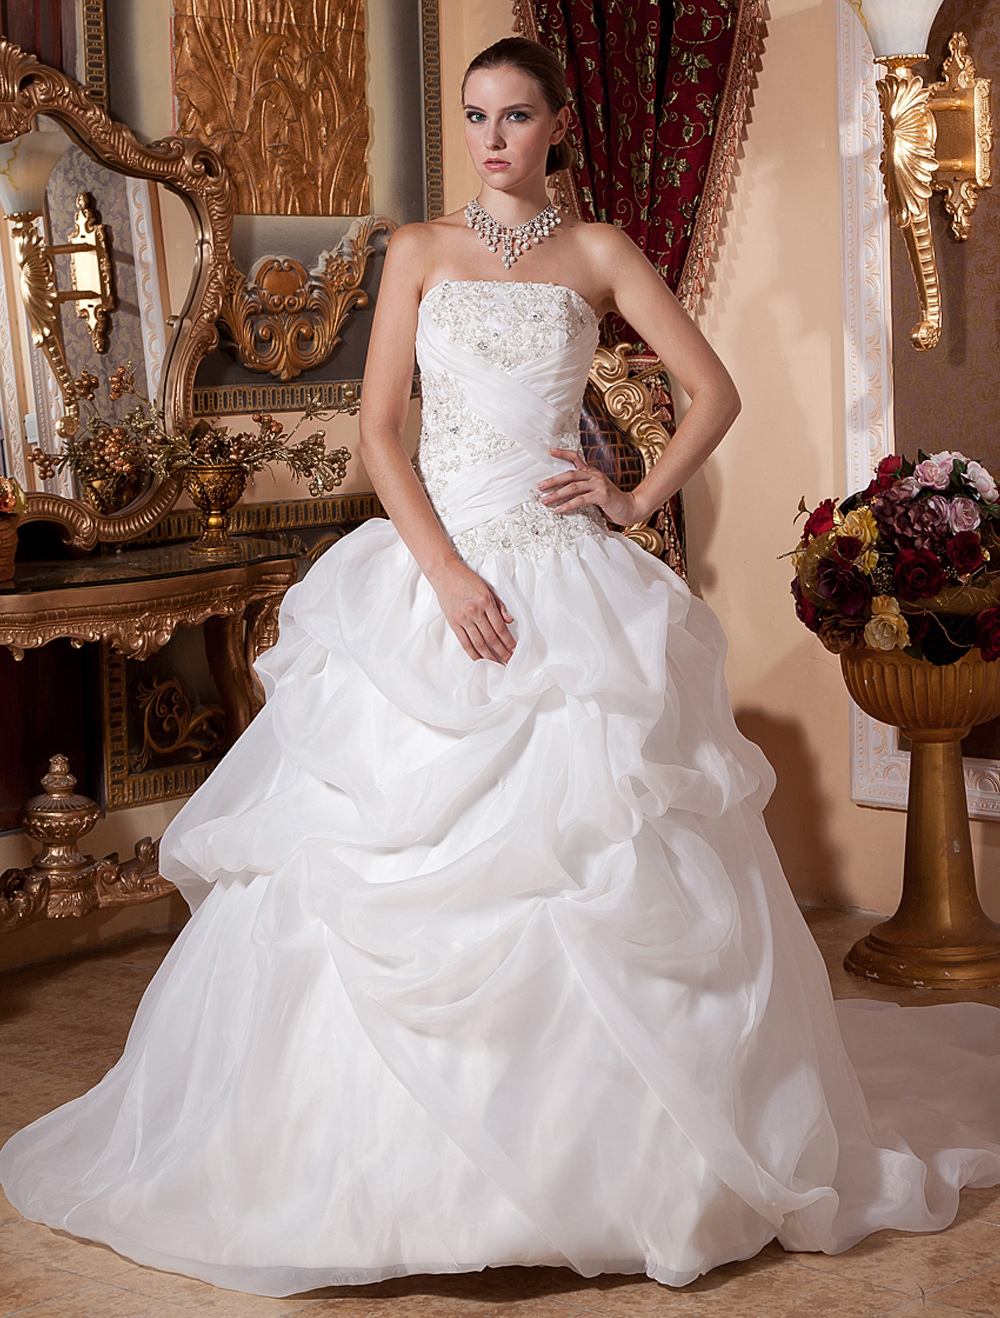 f96274106 White Wedding Dresses Ball Gown Bridal Dress Strapless Organza Beading  Ruched Chapel Train Wedding Gown - Milanoo.com